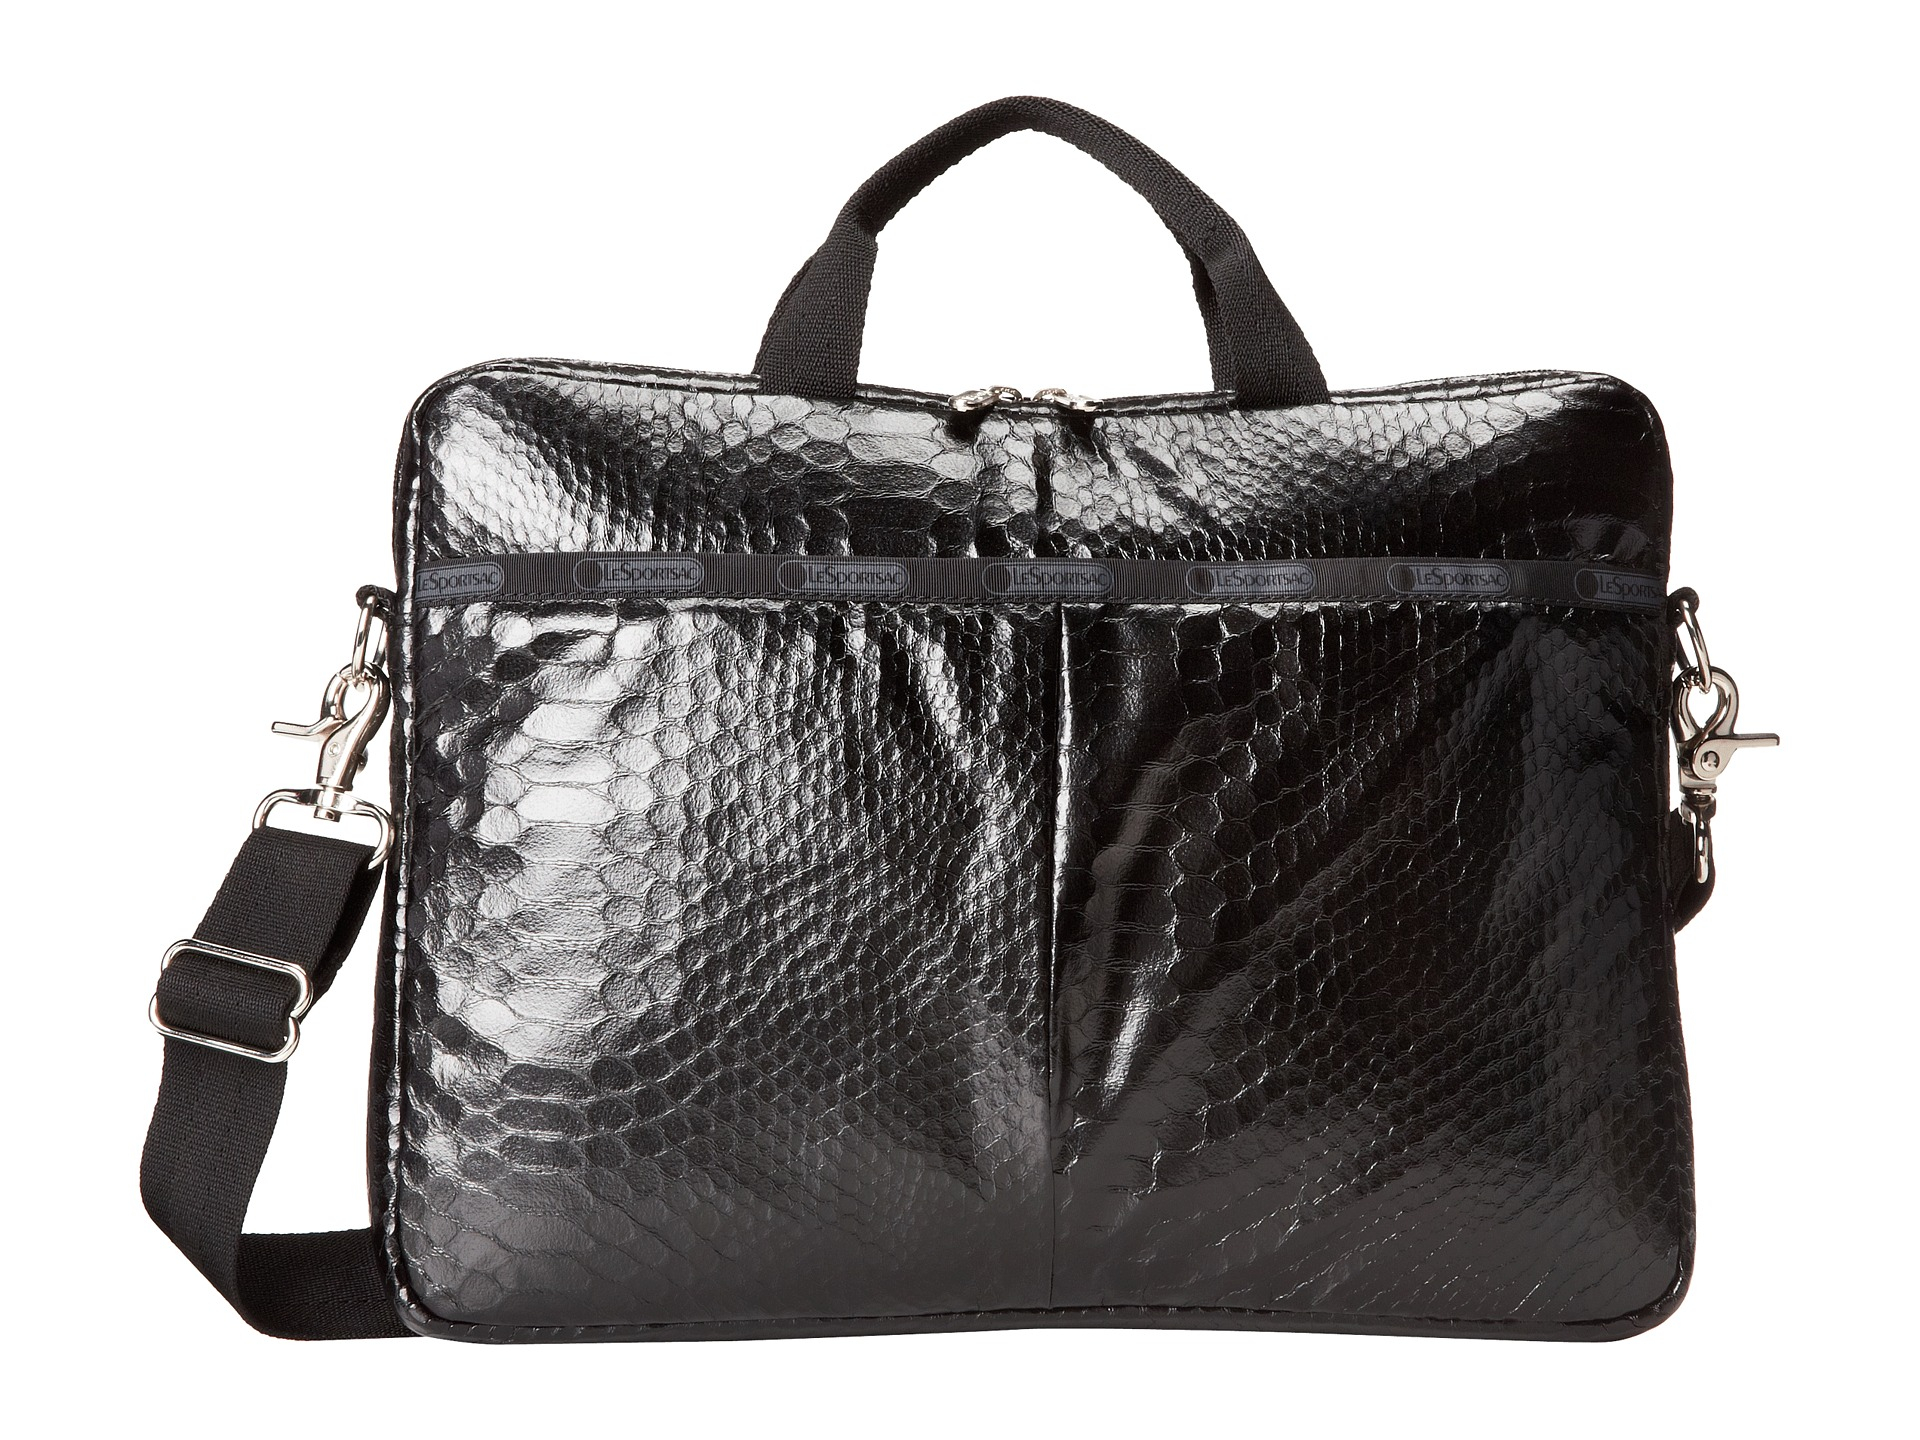 lesportsac 13 inch laptop bag in animal leatherette snake